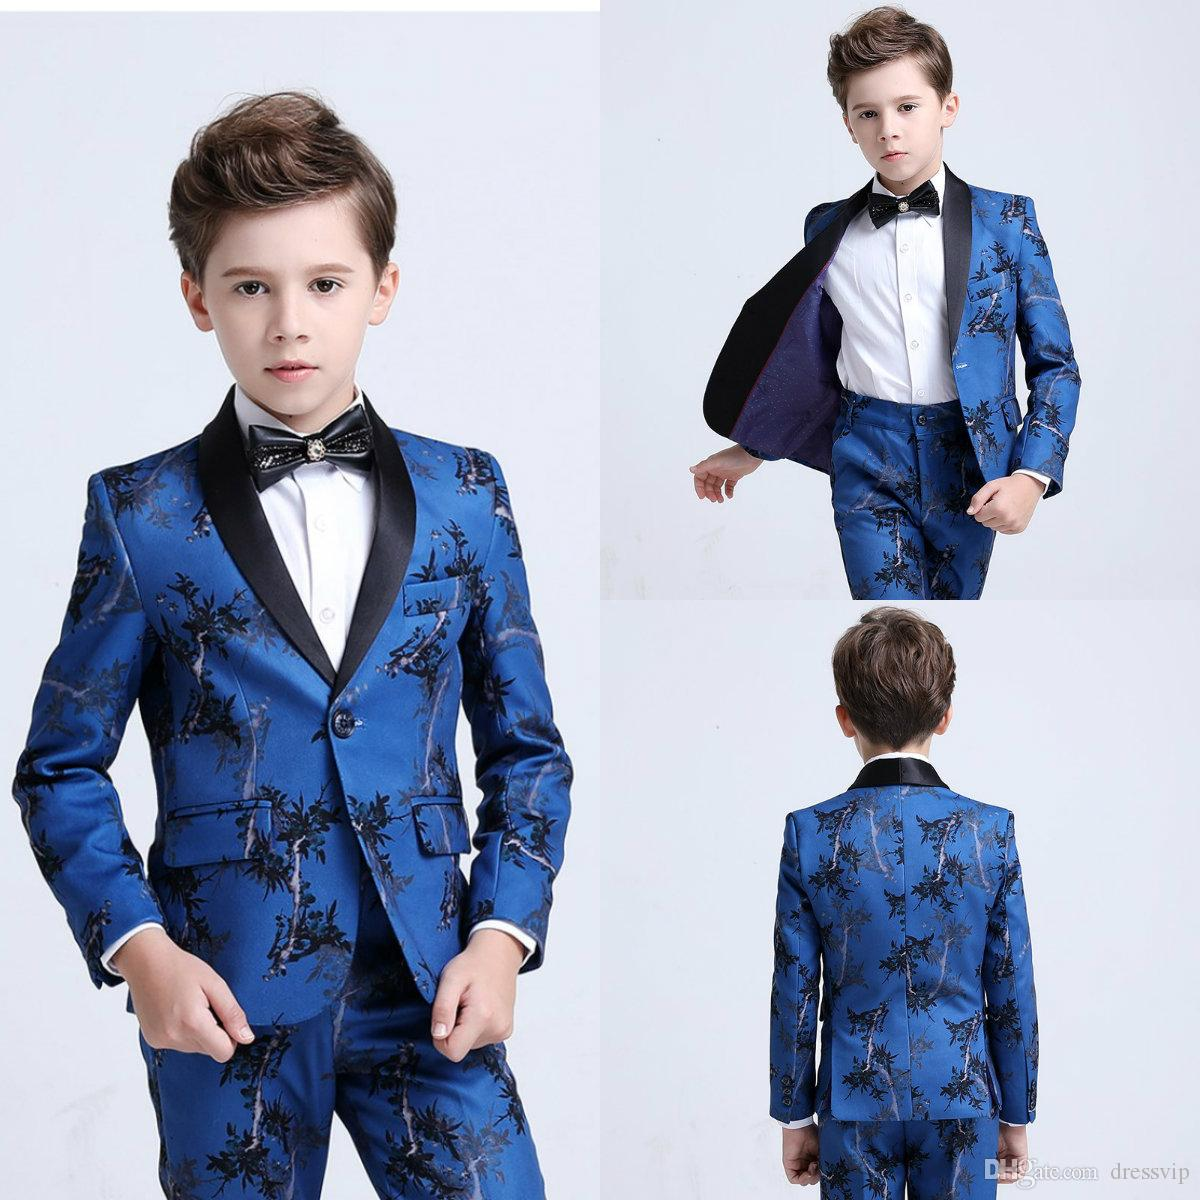 9de158c32faa7a Boys Tuxedo Boys Dinner Suits Boys Formal Suits Tuxedo for Kids Tuxedo  Formal Occasion Floral Print Suits For Little Men Three Pieces Kids Formal  Wedding ...